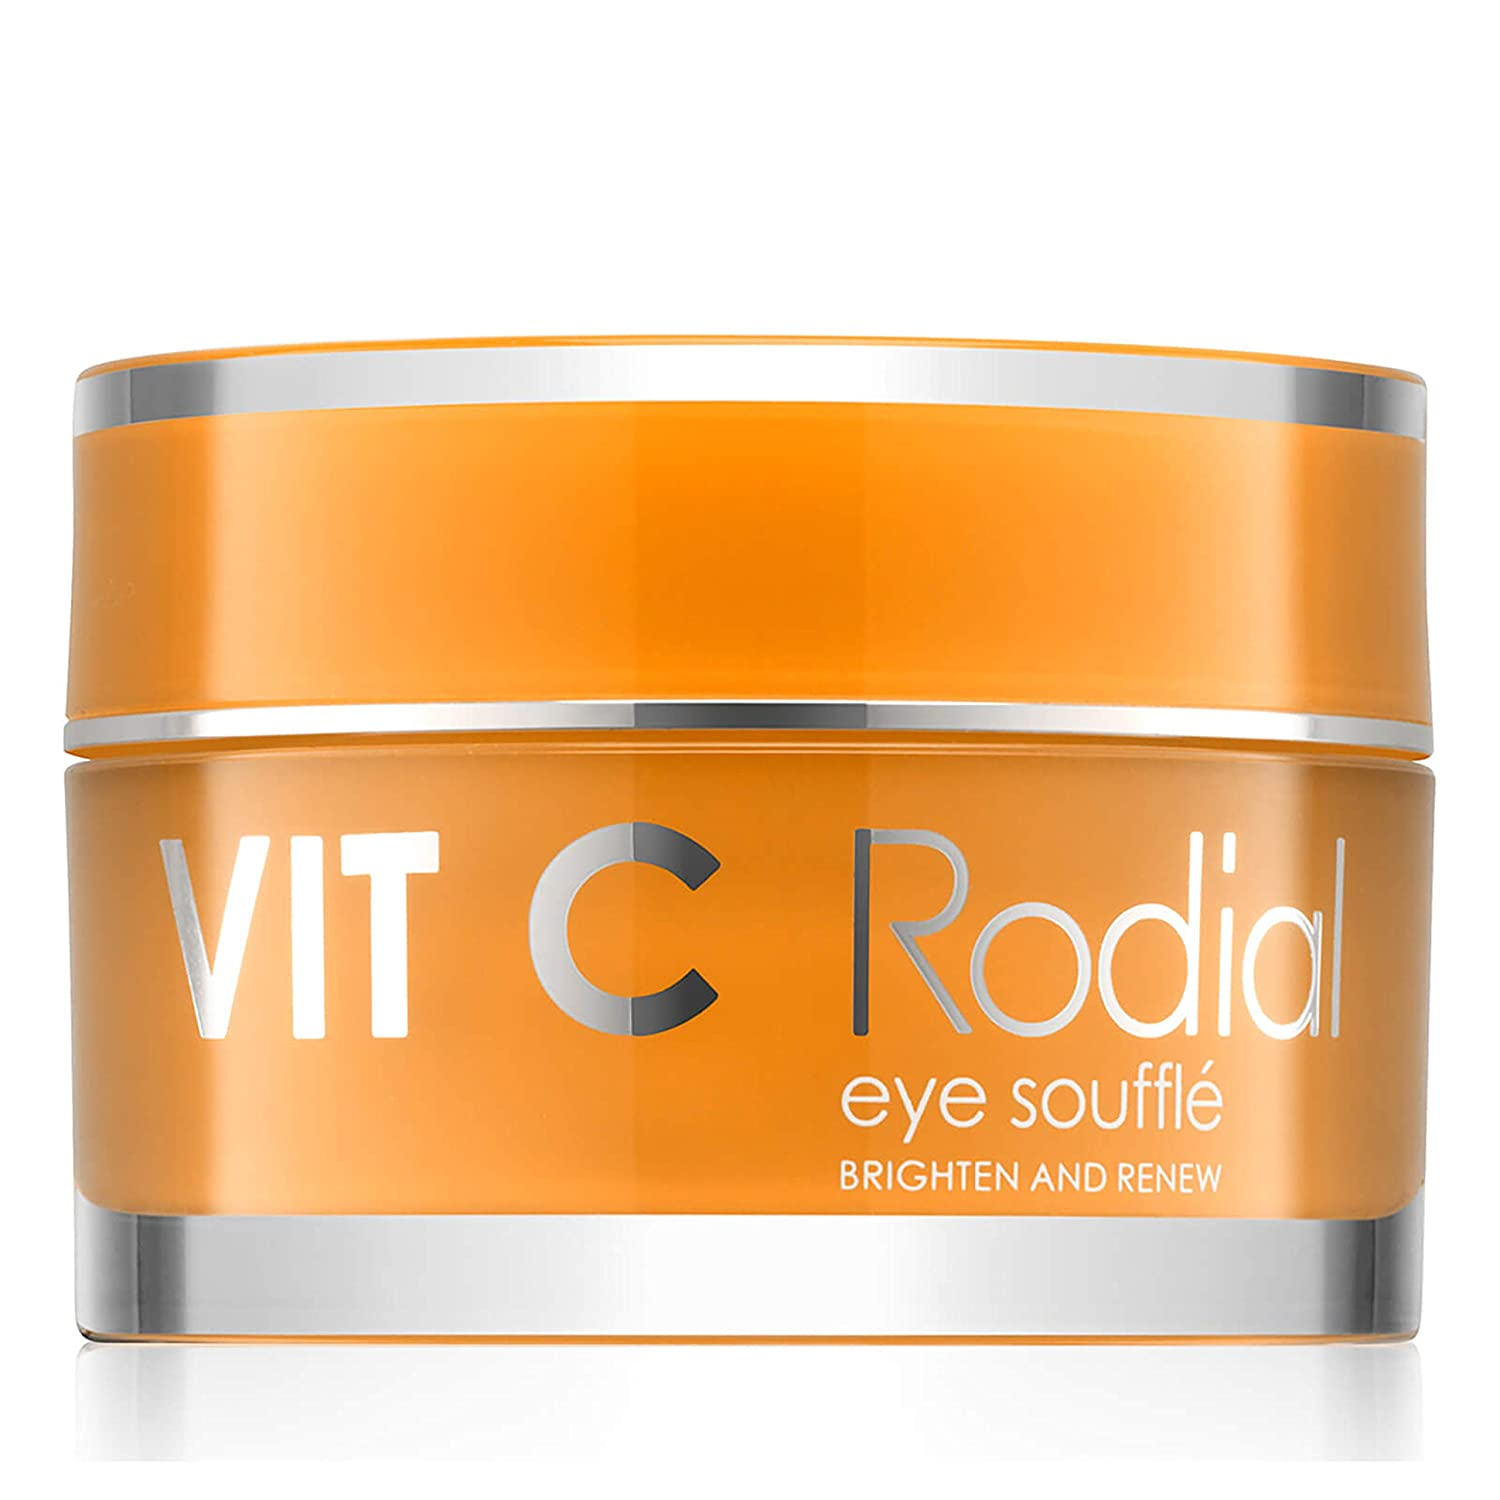 Rodial Vitamin C Eye Souffle 15 ml: : Beauty